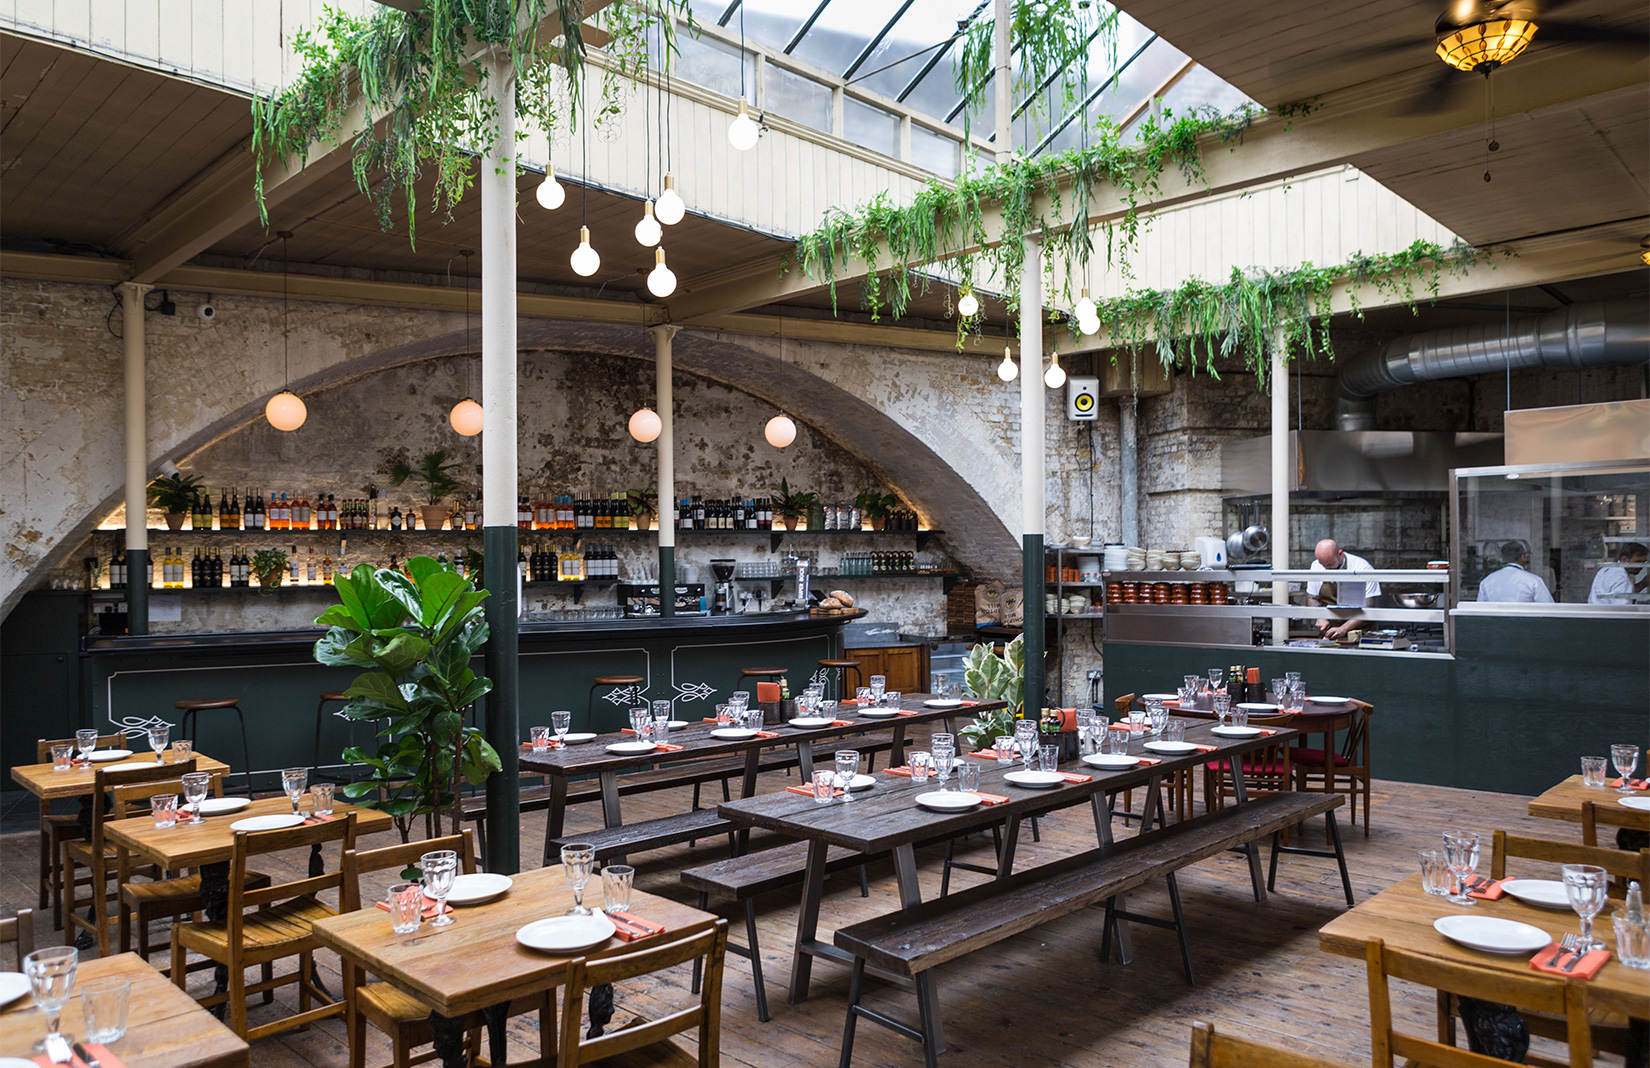 The Best London Restaurant Openings Of 2018 For Design Lovers The Spaces